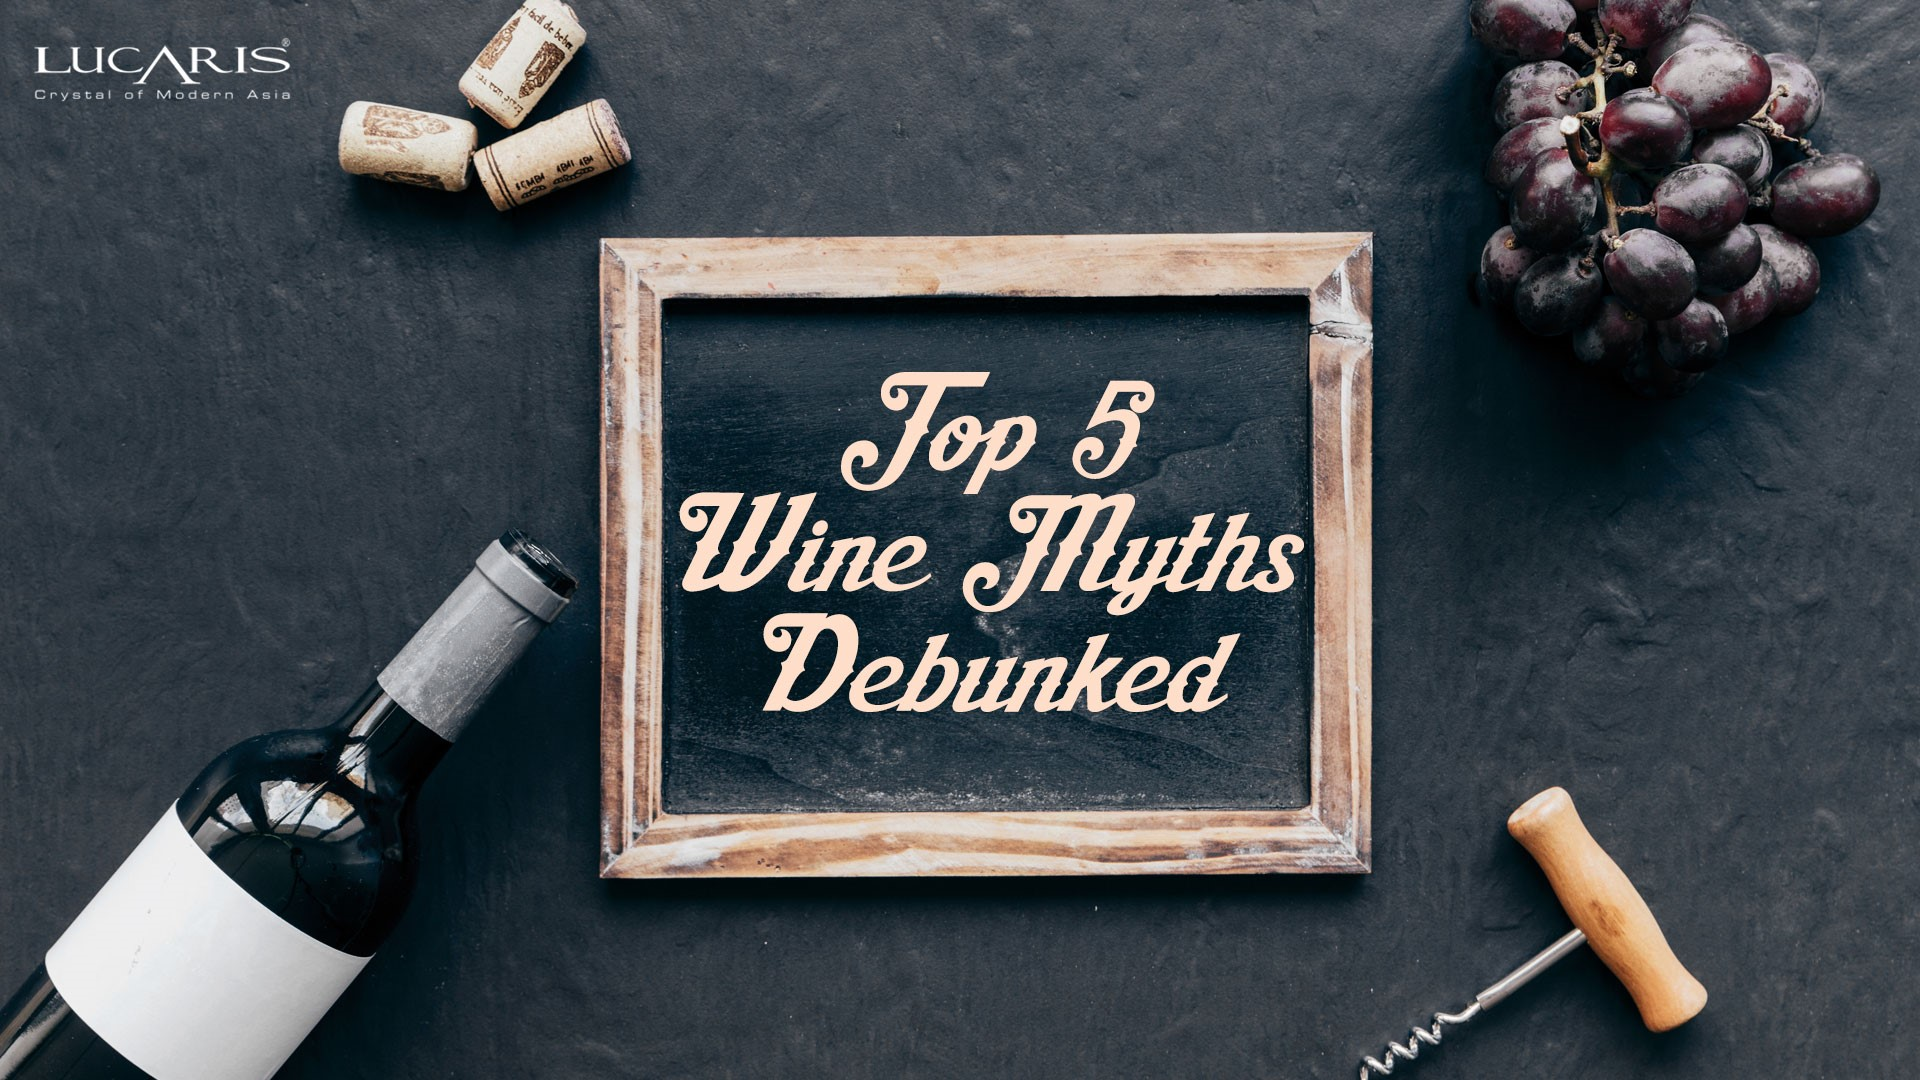 Top 5 Wine Myths debunked!